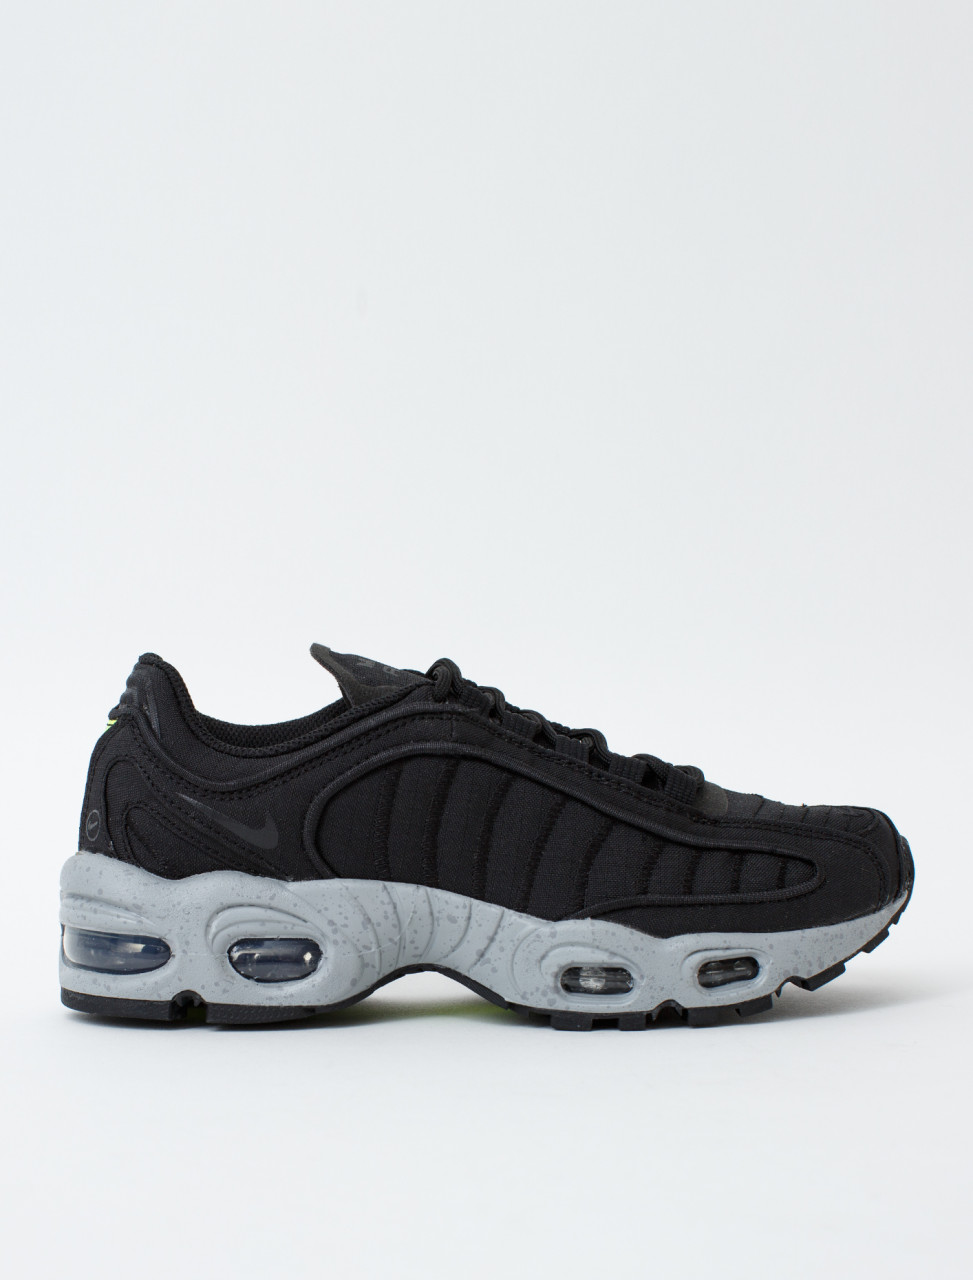 Air Max Tailwind IV SP Sneaker